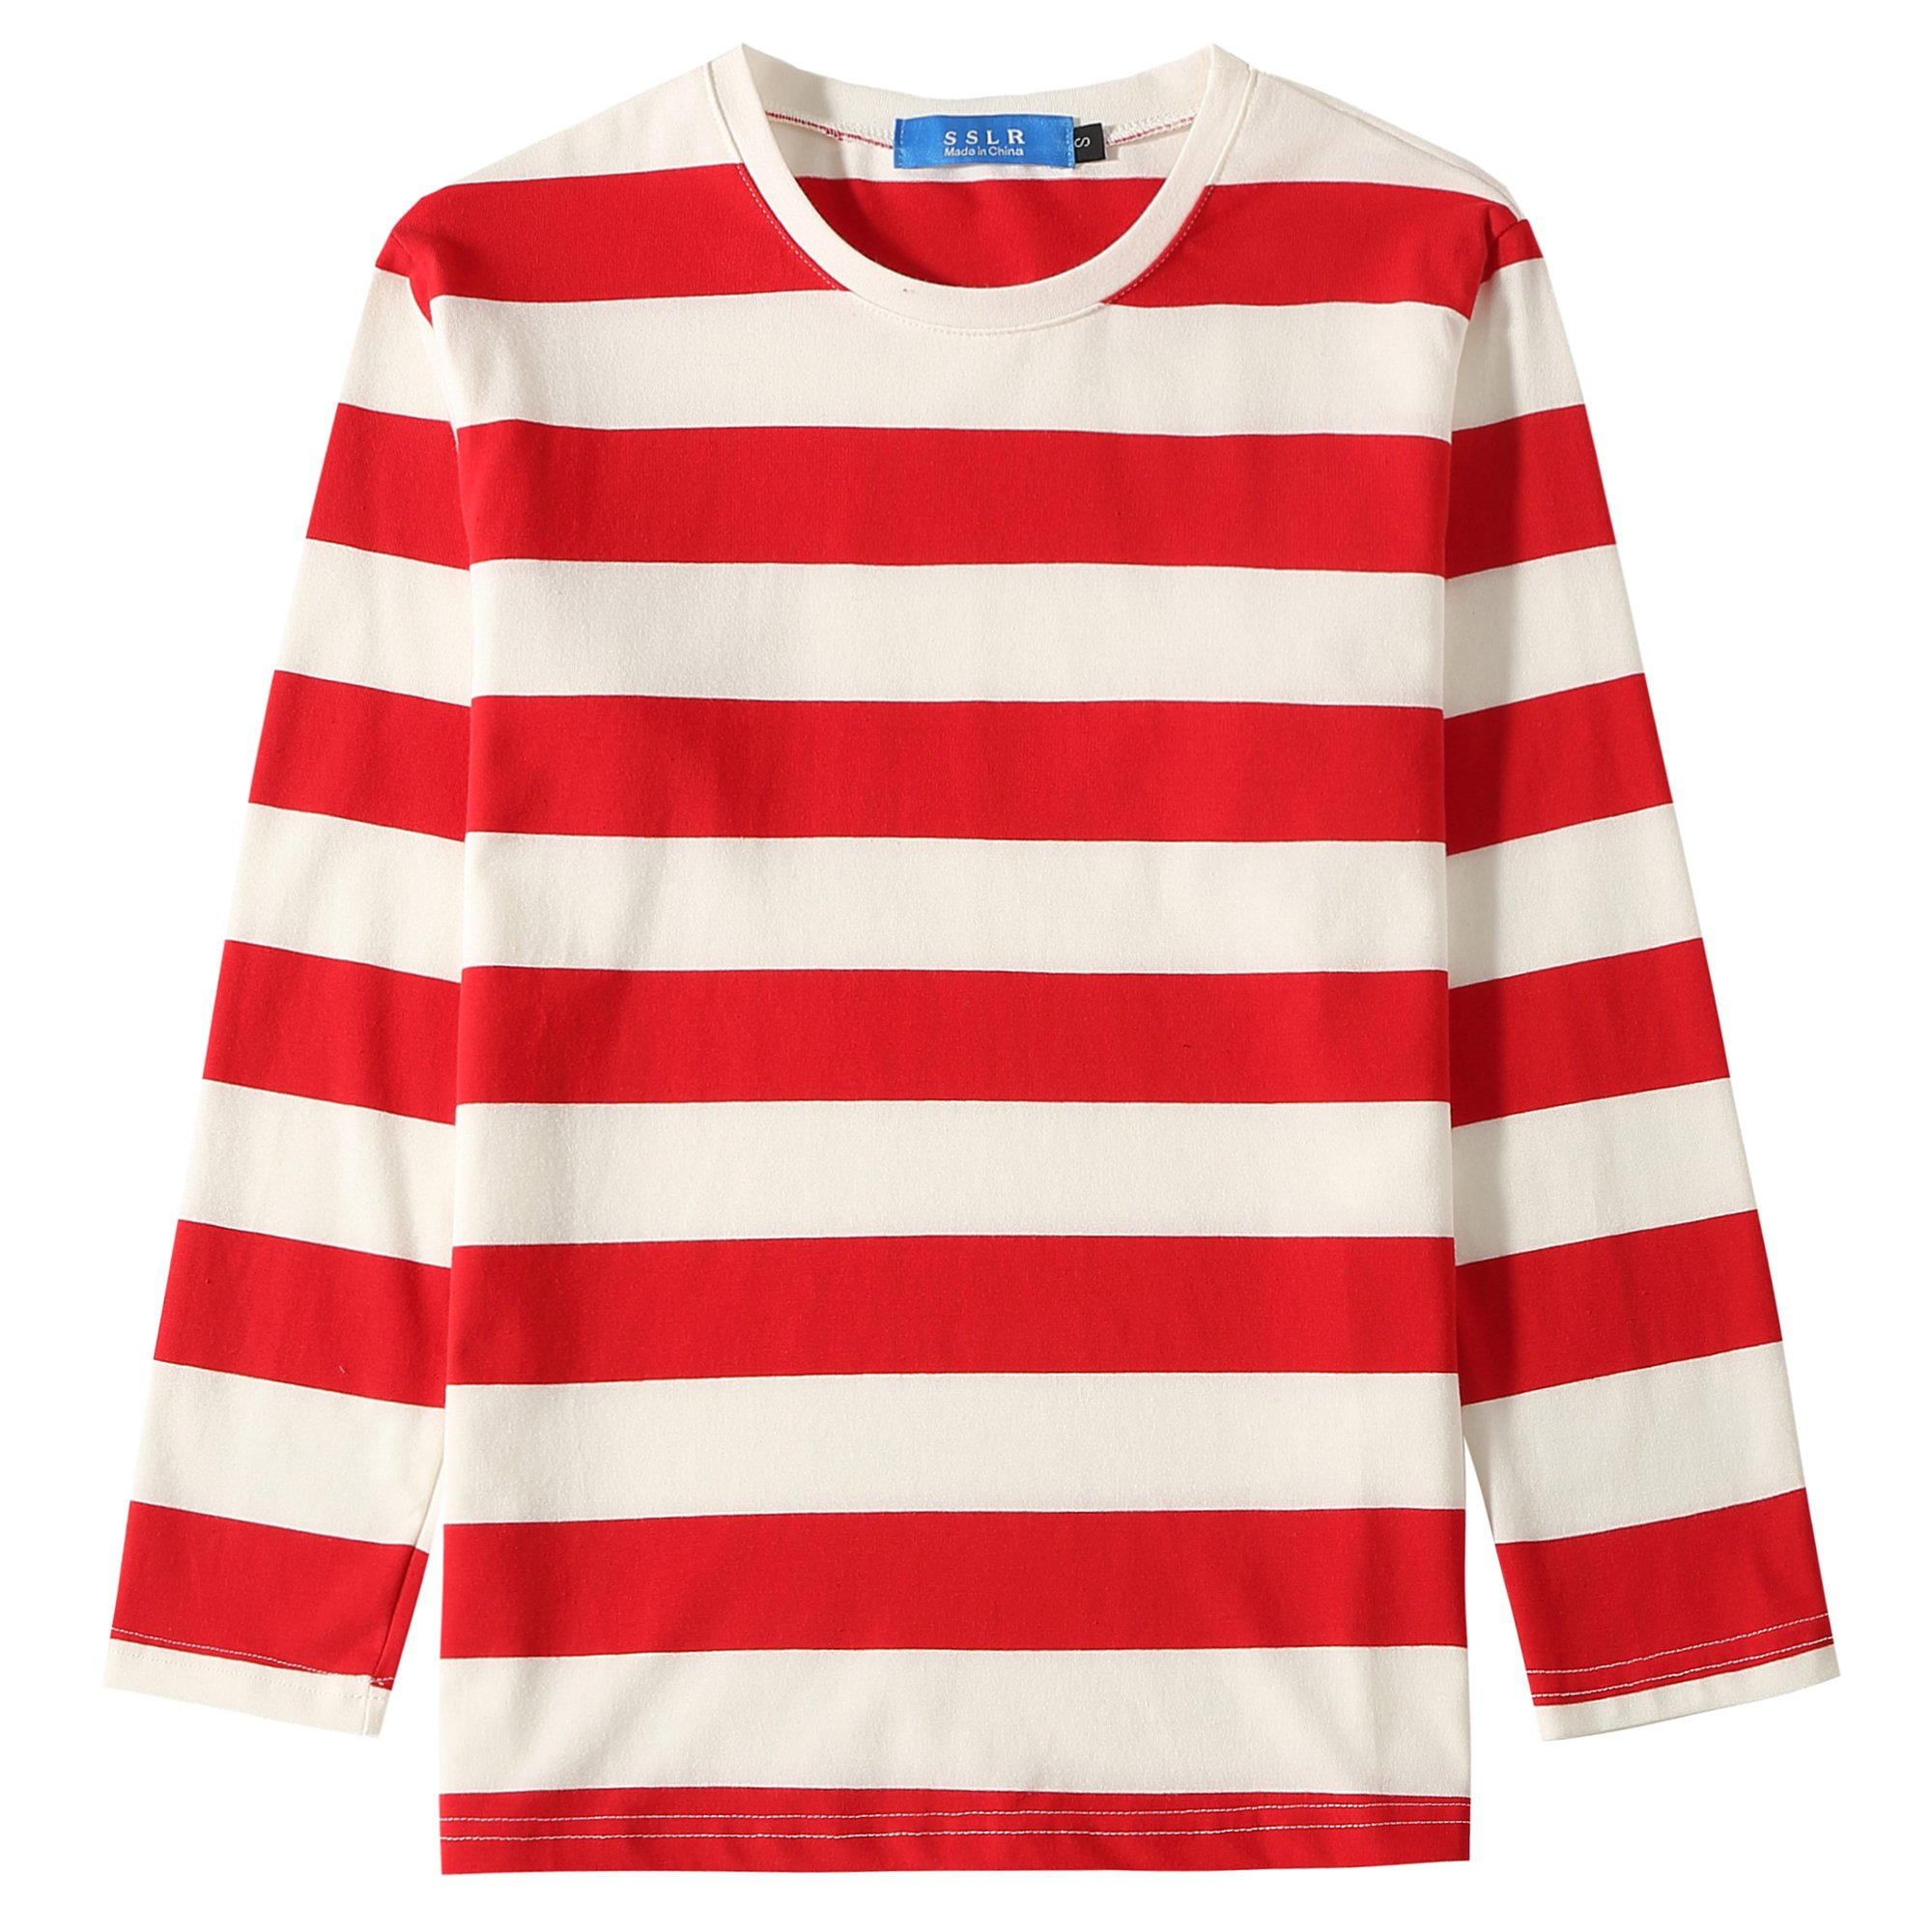 SSLR Big Boys' Cotton Round Neck Casual Long Sleeves Stripe T-Shirt (Large(14-16), White Red)